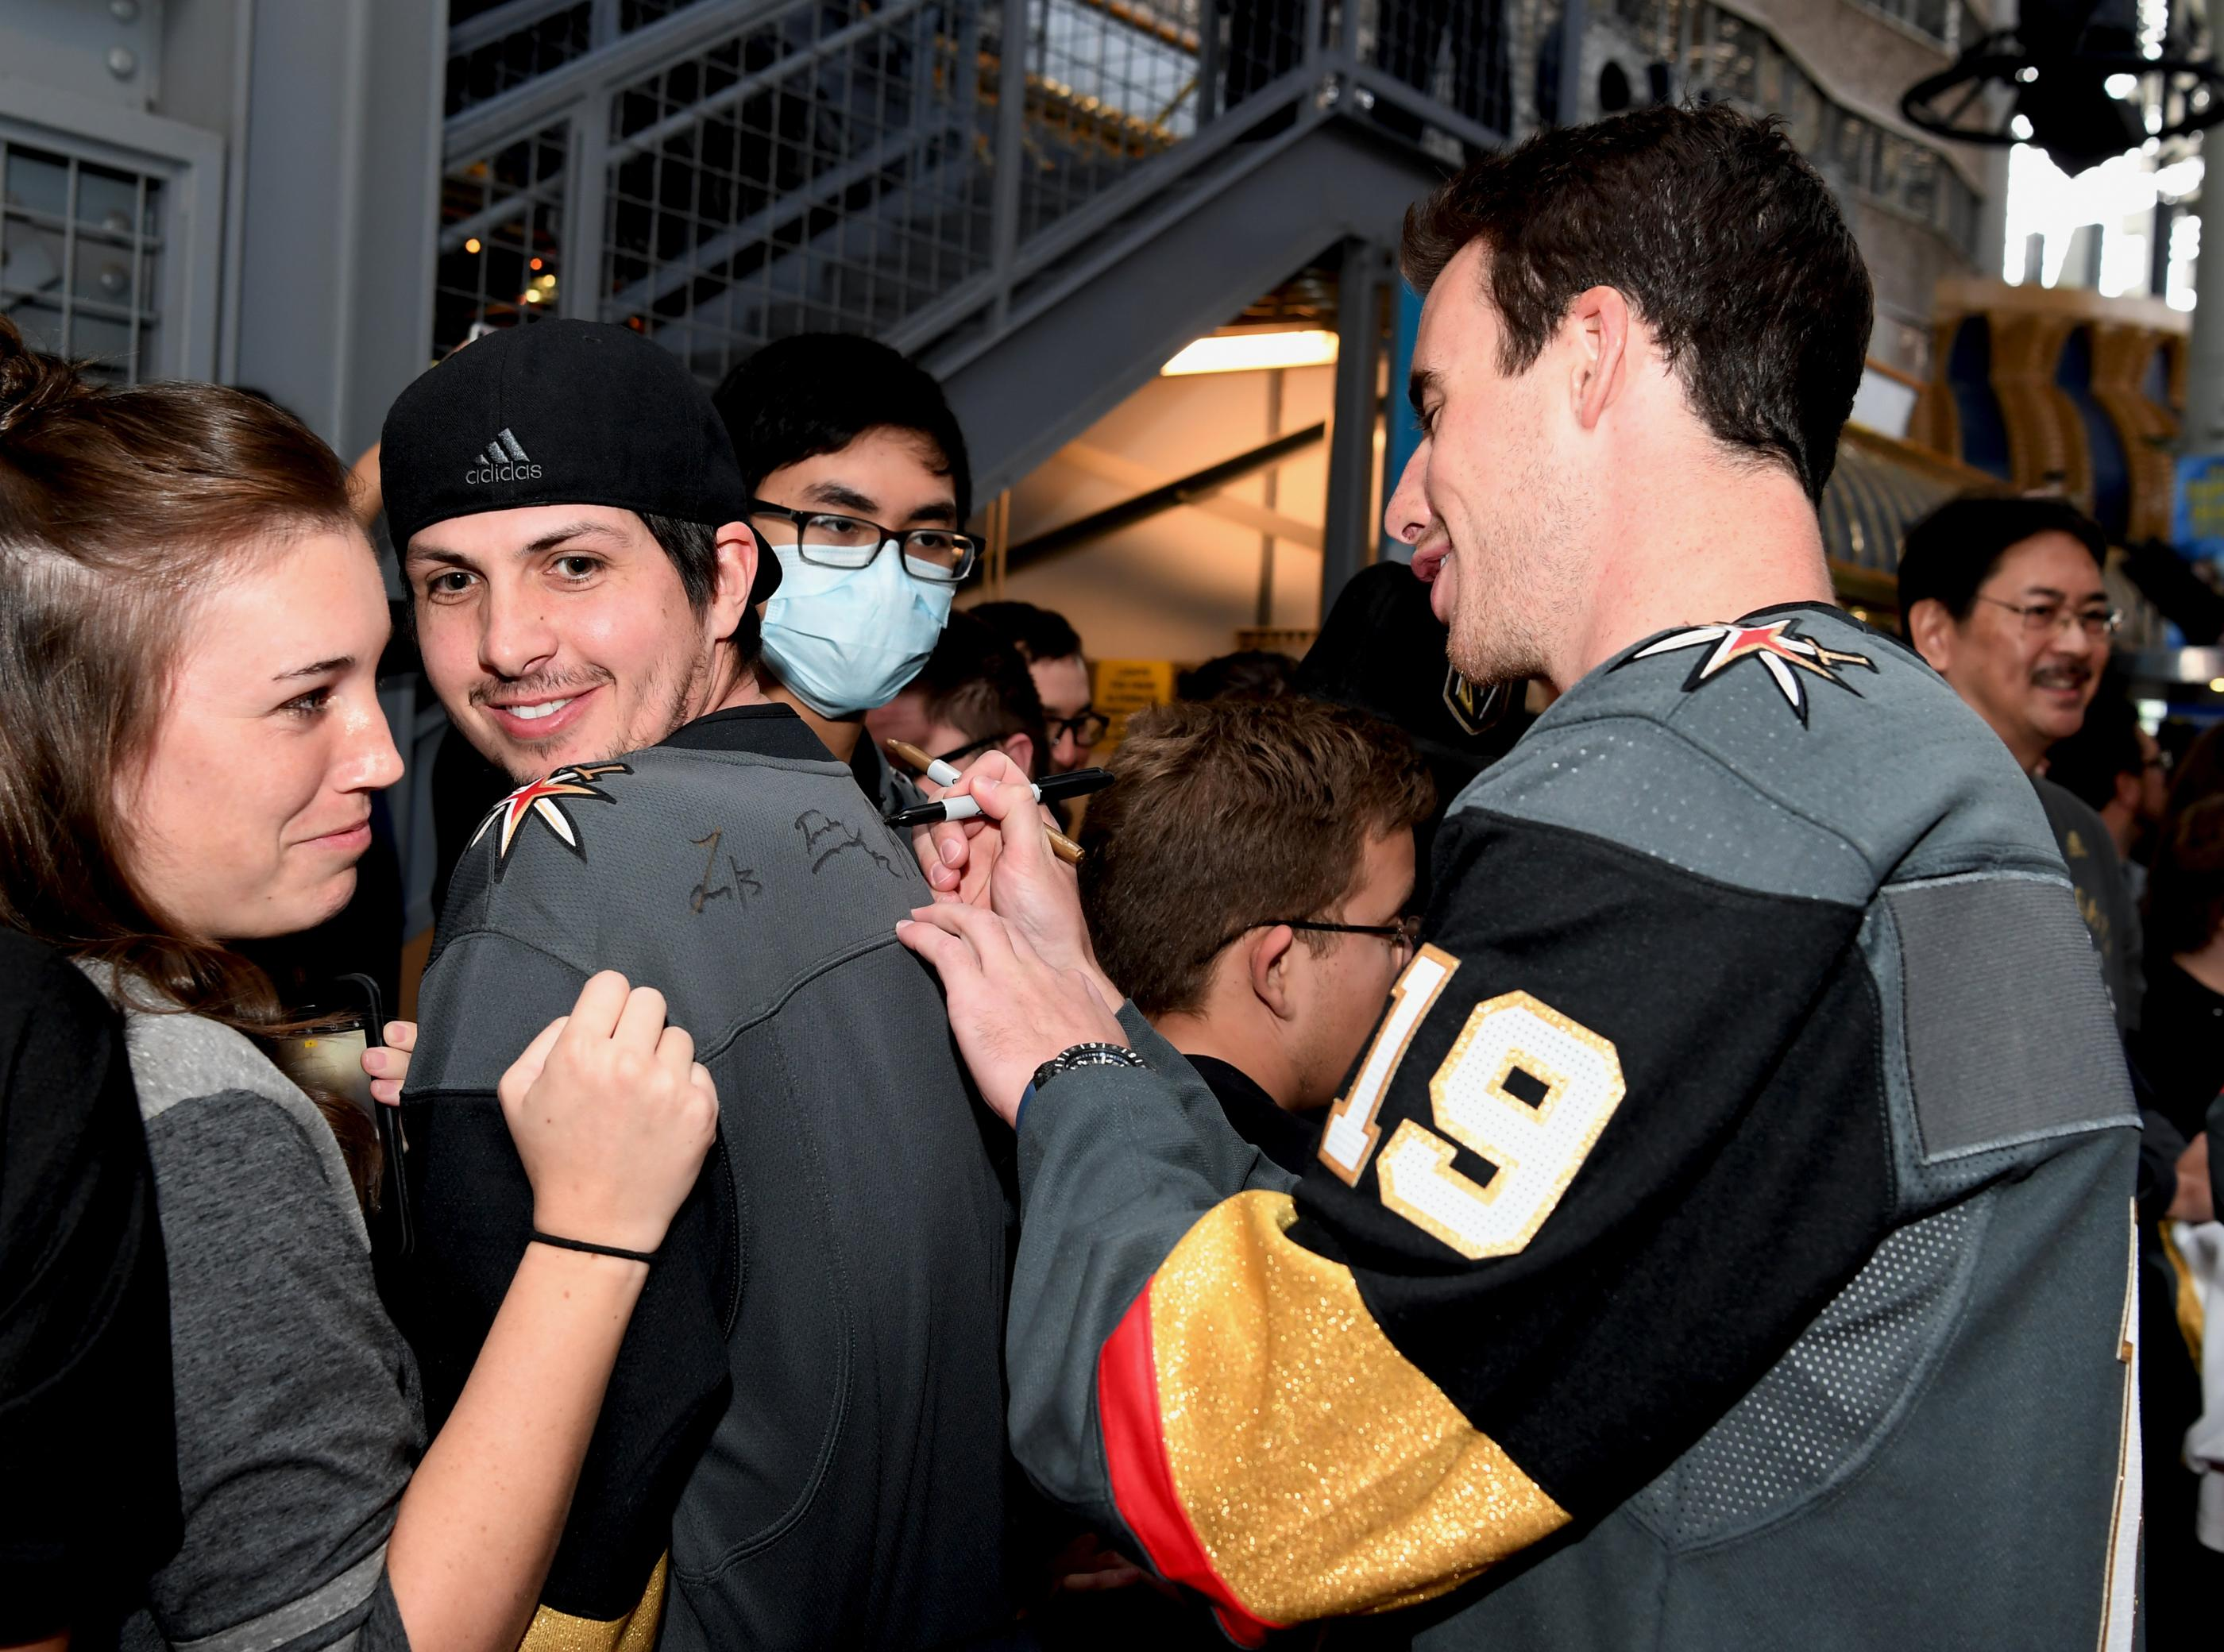 The Golden Knights host a Fan Fest with the D Las Vegas and Fremont Street Experience. Las Vegas Golden Knights player Reilly Smith signs a fans shirt at Fremont Street Experience. Sunday, January 14, 2017. CREDIT: Glenn Pinkerton/Las Vegas News Bureau